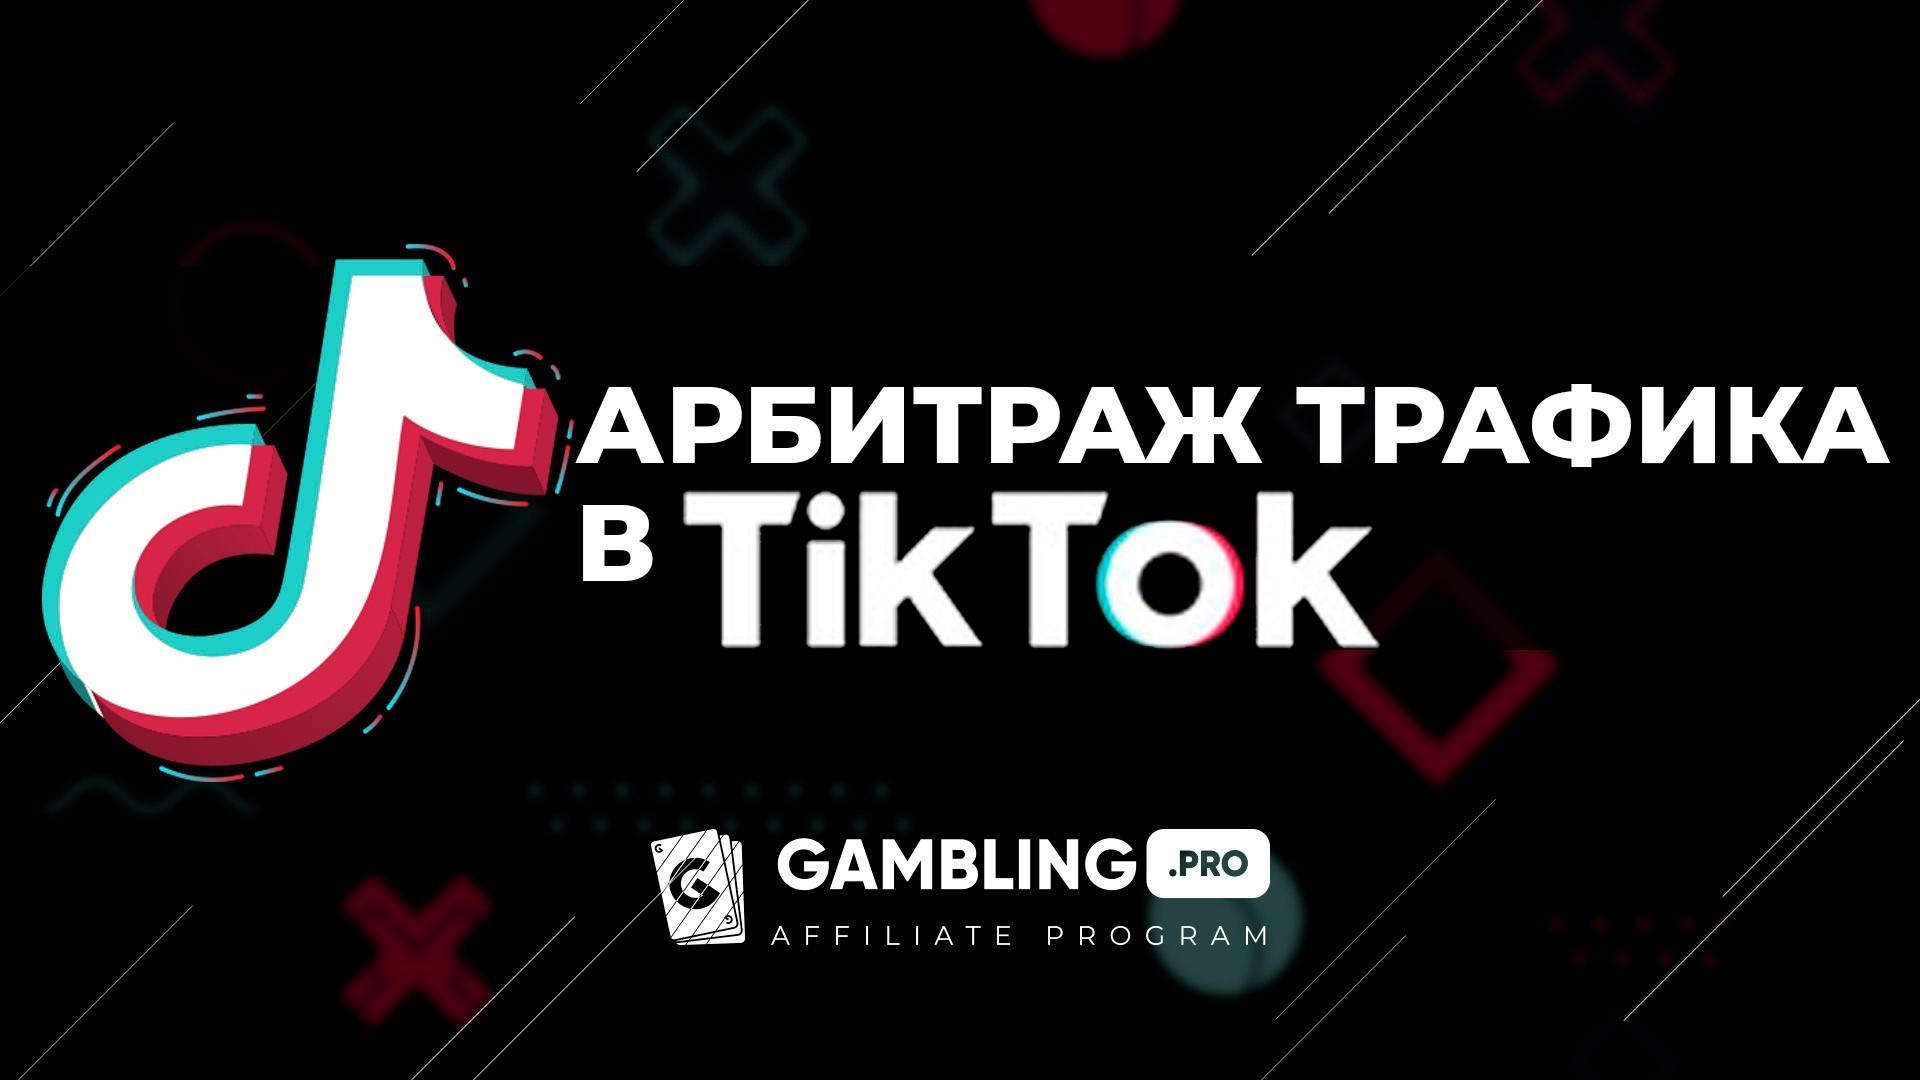 Photo of Gambling Арбитраж трафика в Тик-Ток